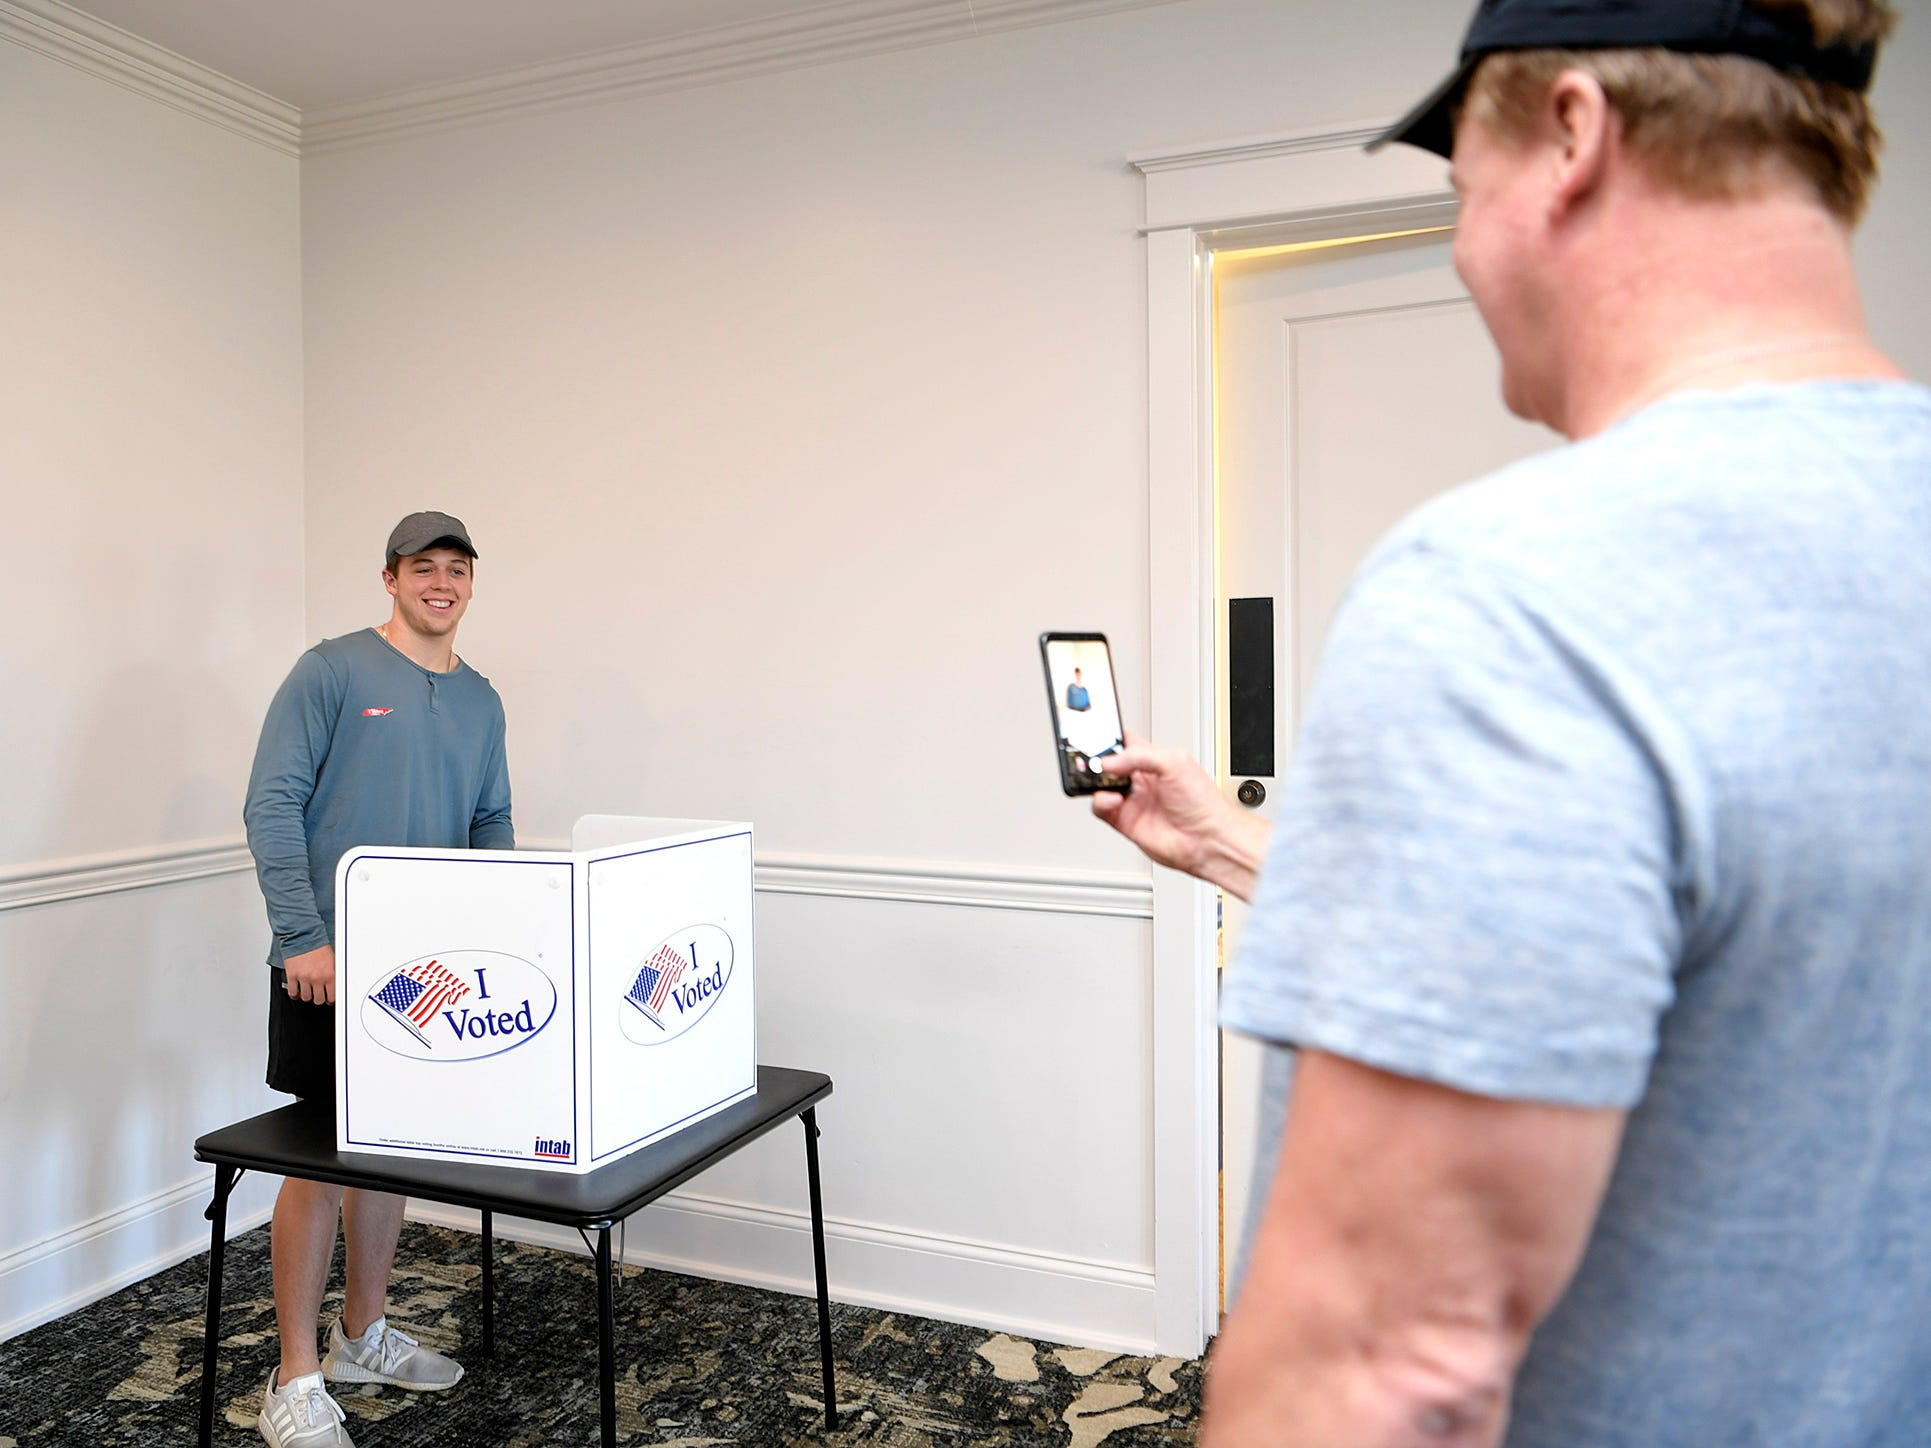 Bill Huff of Franklin celebrates his son, Brandon Huff,19, voting for the first time with a photo at the Westhaven Clubhouse polling location in Franklin, Tenn. on Tuesday, Nov. 6, 2018.